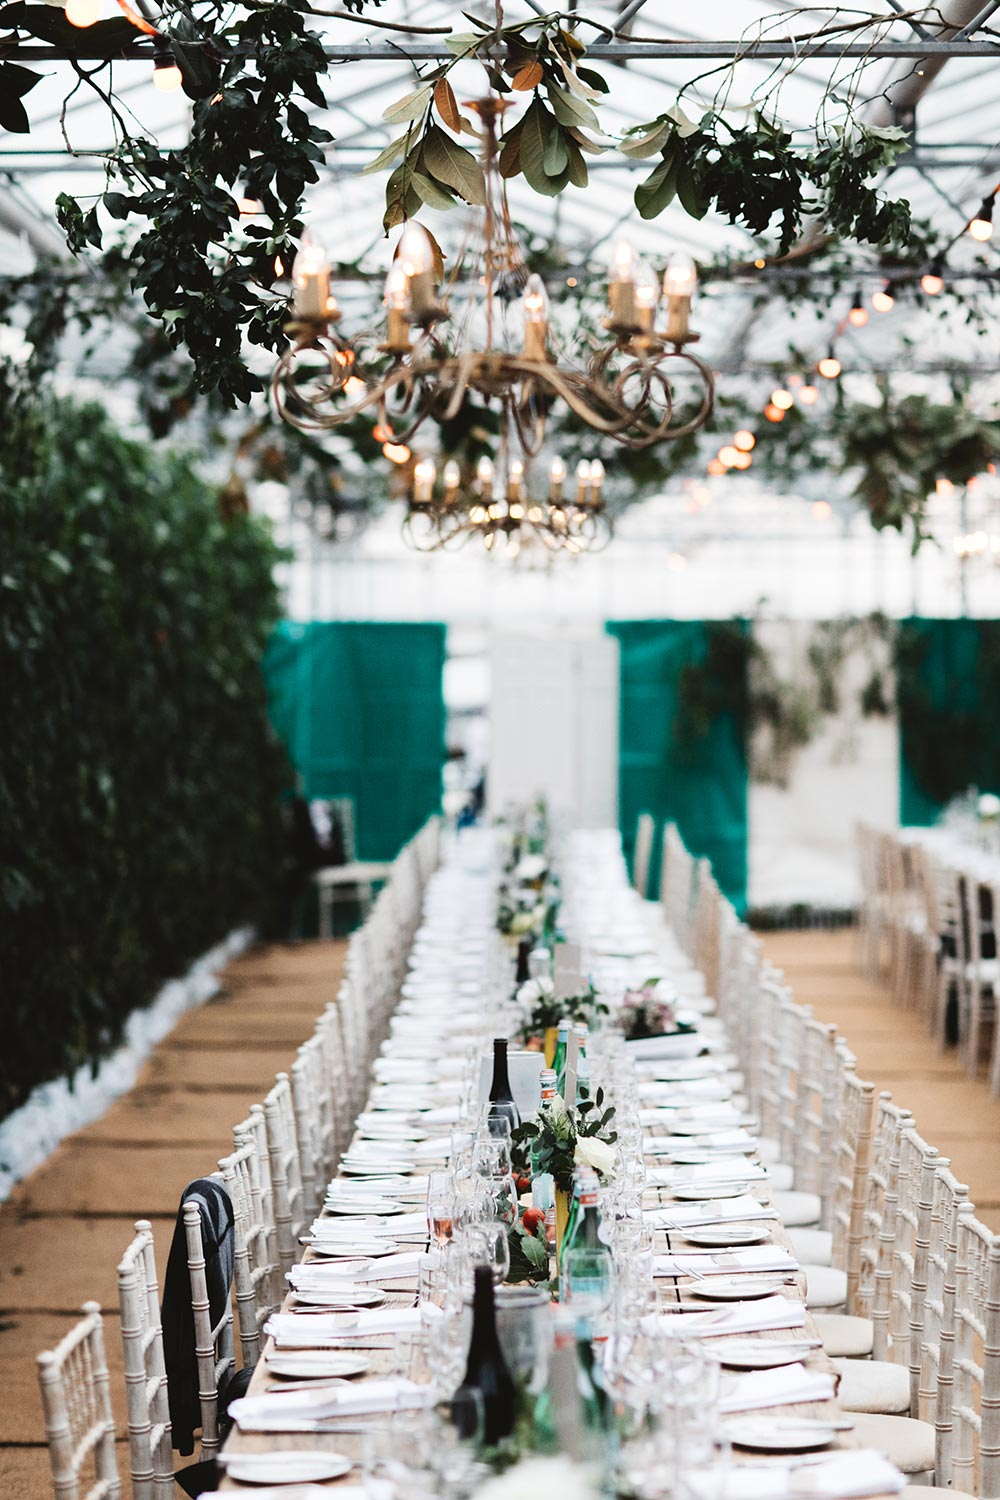 34-wilde-thyme-wedding-event-florist-flowers-green-house-wedding-ceiling-decor.jpg